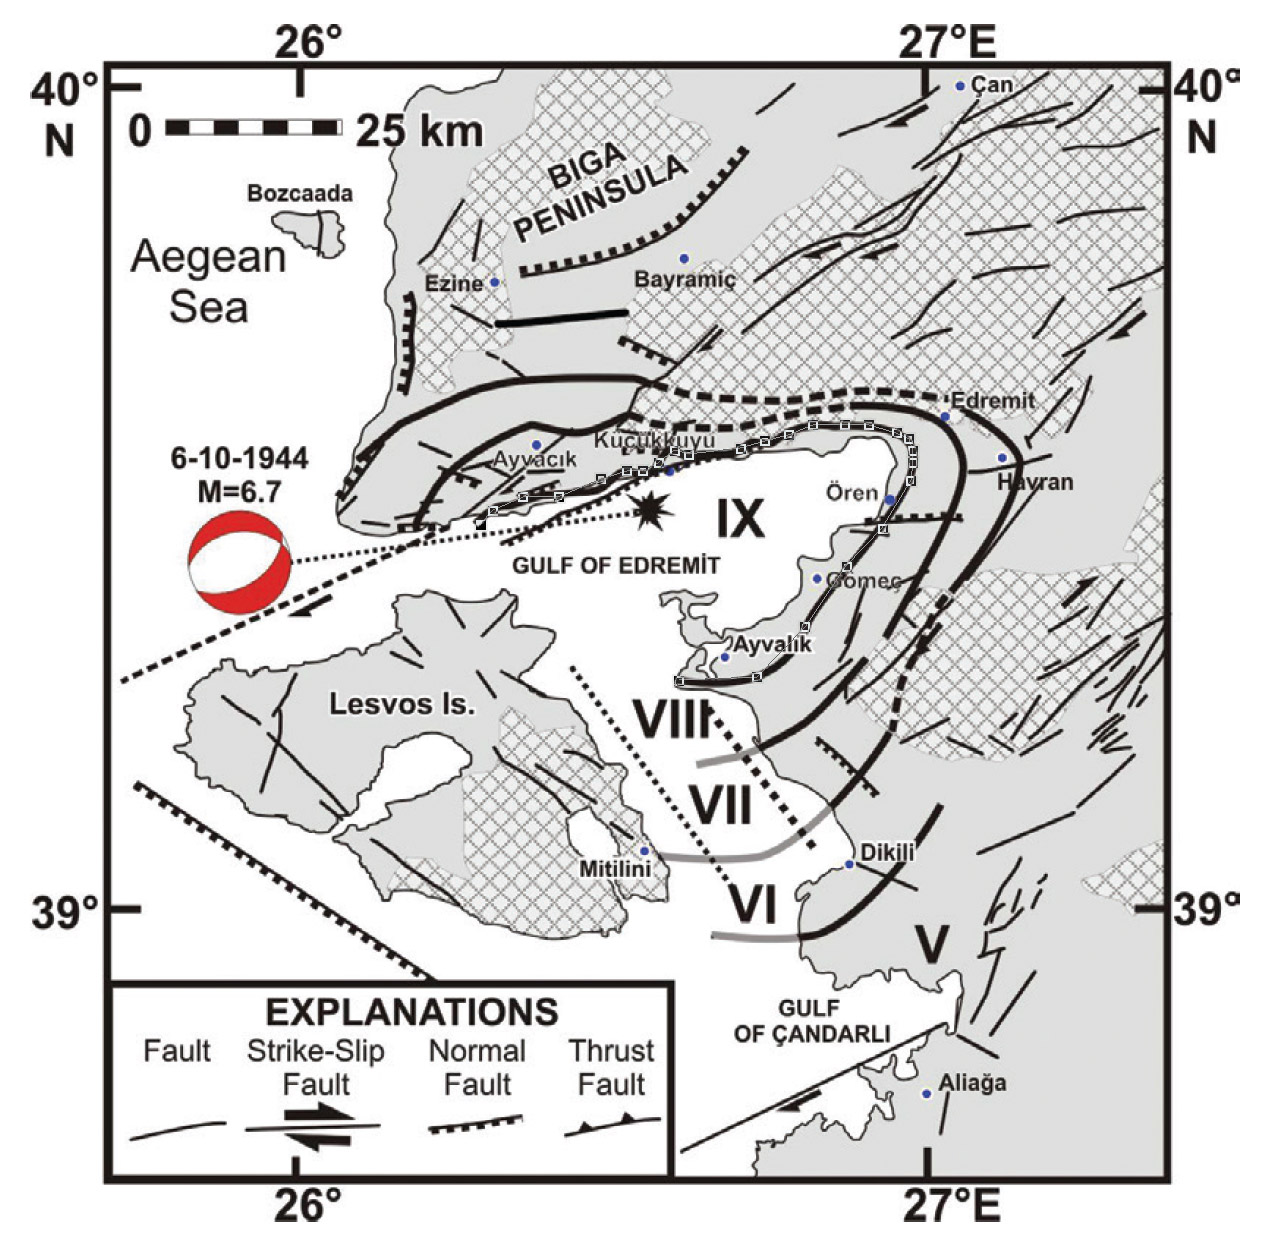 1944 Edremit Earthquake caused substandard structures collapse and  substantial damage to well-constructed structures along the coastline of the Gulfof Edremit effecting Ayvali, Gomen, Oren. Visible damage occurred intensity higher than VI.